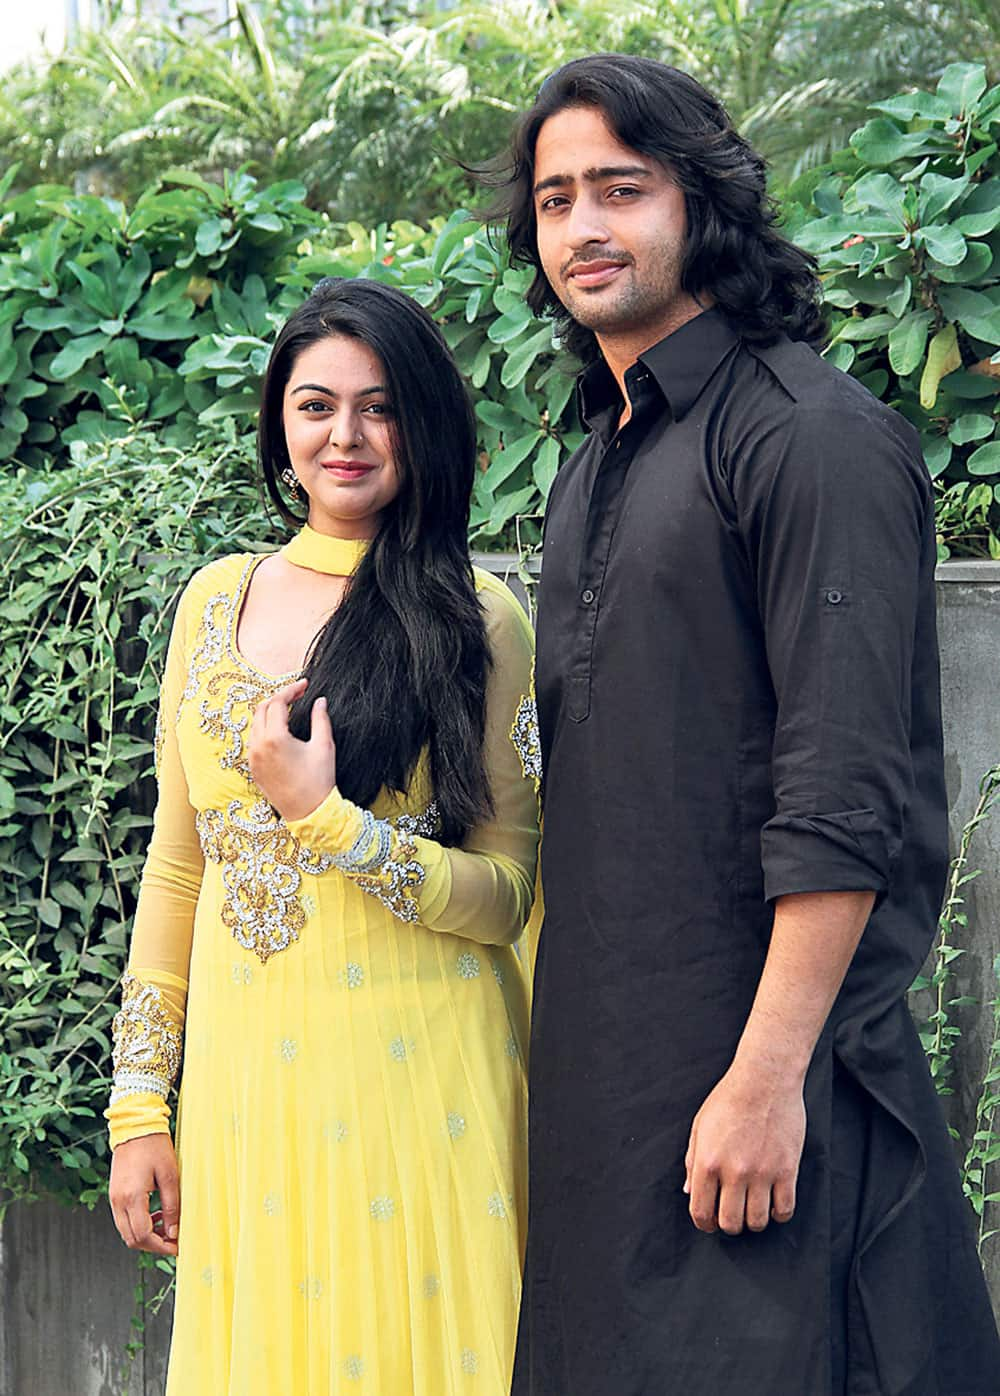 Actors Shaheer Sheikh (Arjun) and Shafaq Naaz (Kunti) of 'Mahabharata' tele-serial were present in the city to meet Amdavadis. Pic Courtesy: DNA